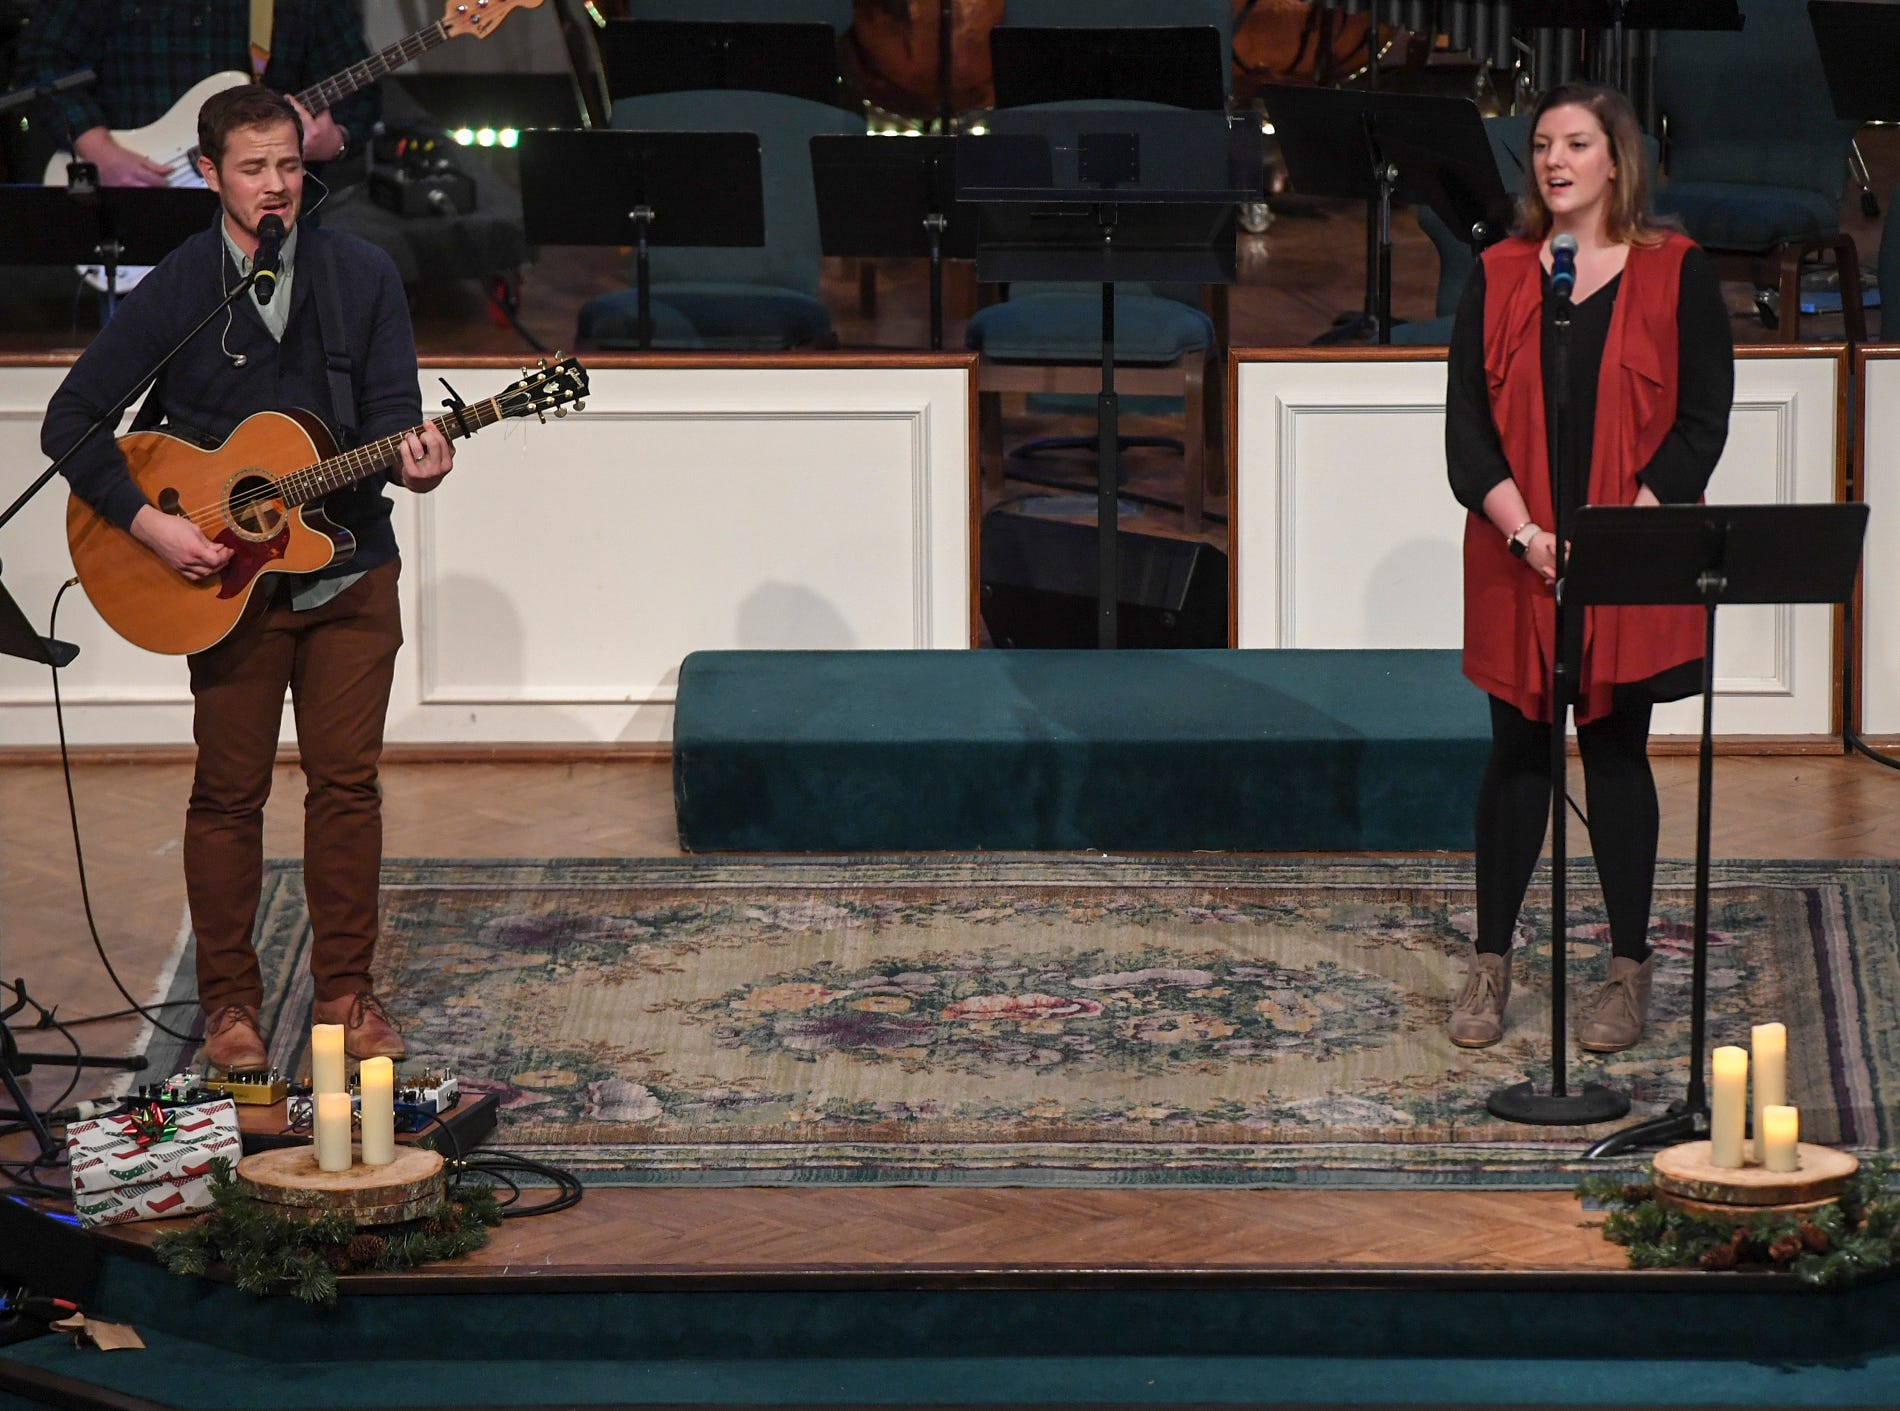 Paul Helms and Nicole Camp sing Joy to the World during Christmas Eve at West Jackson, Monday, December 24.